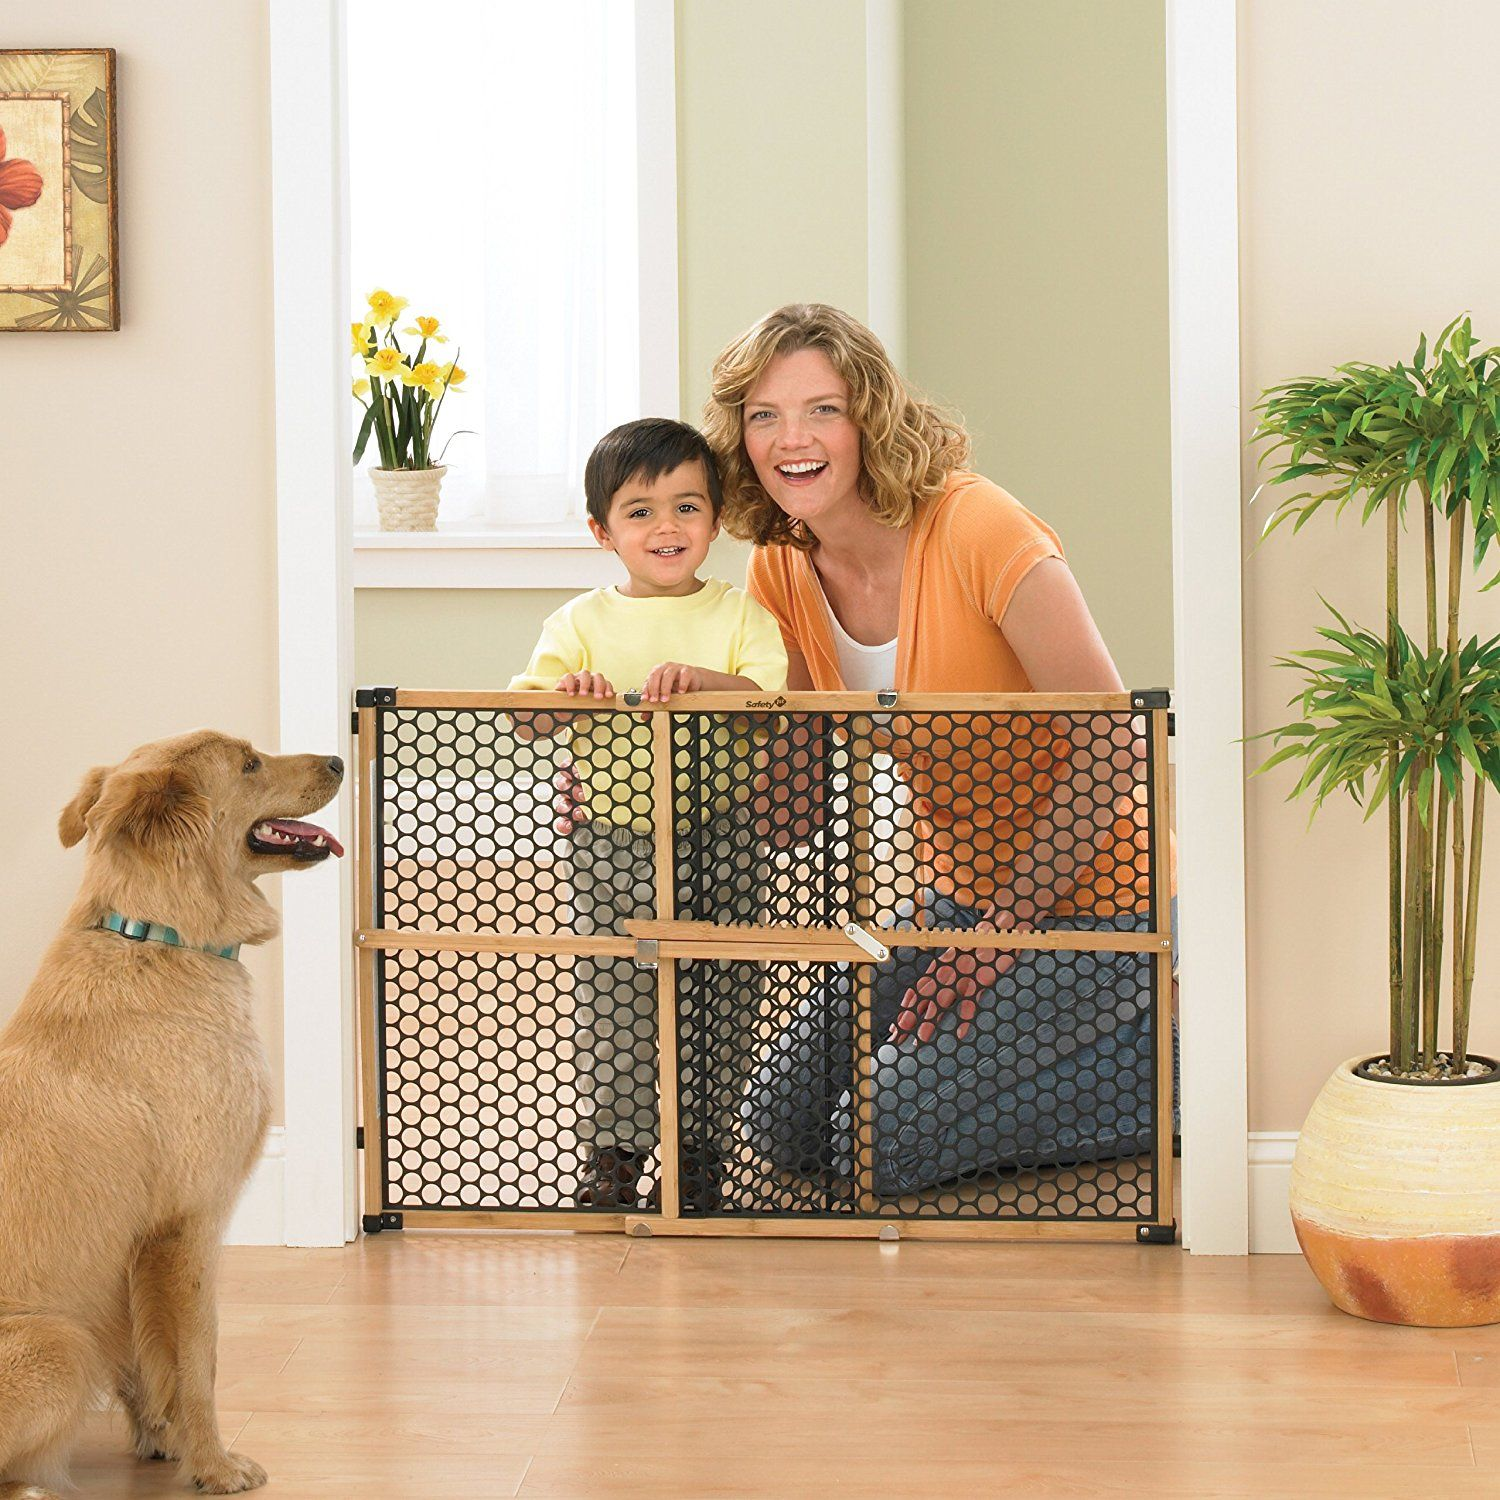 Bamboo Gate Safety 1st Nature Next Baby gates, Best baby